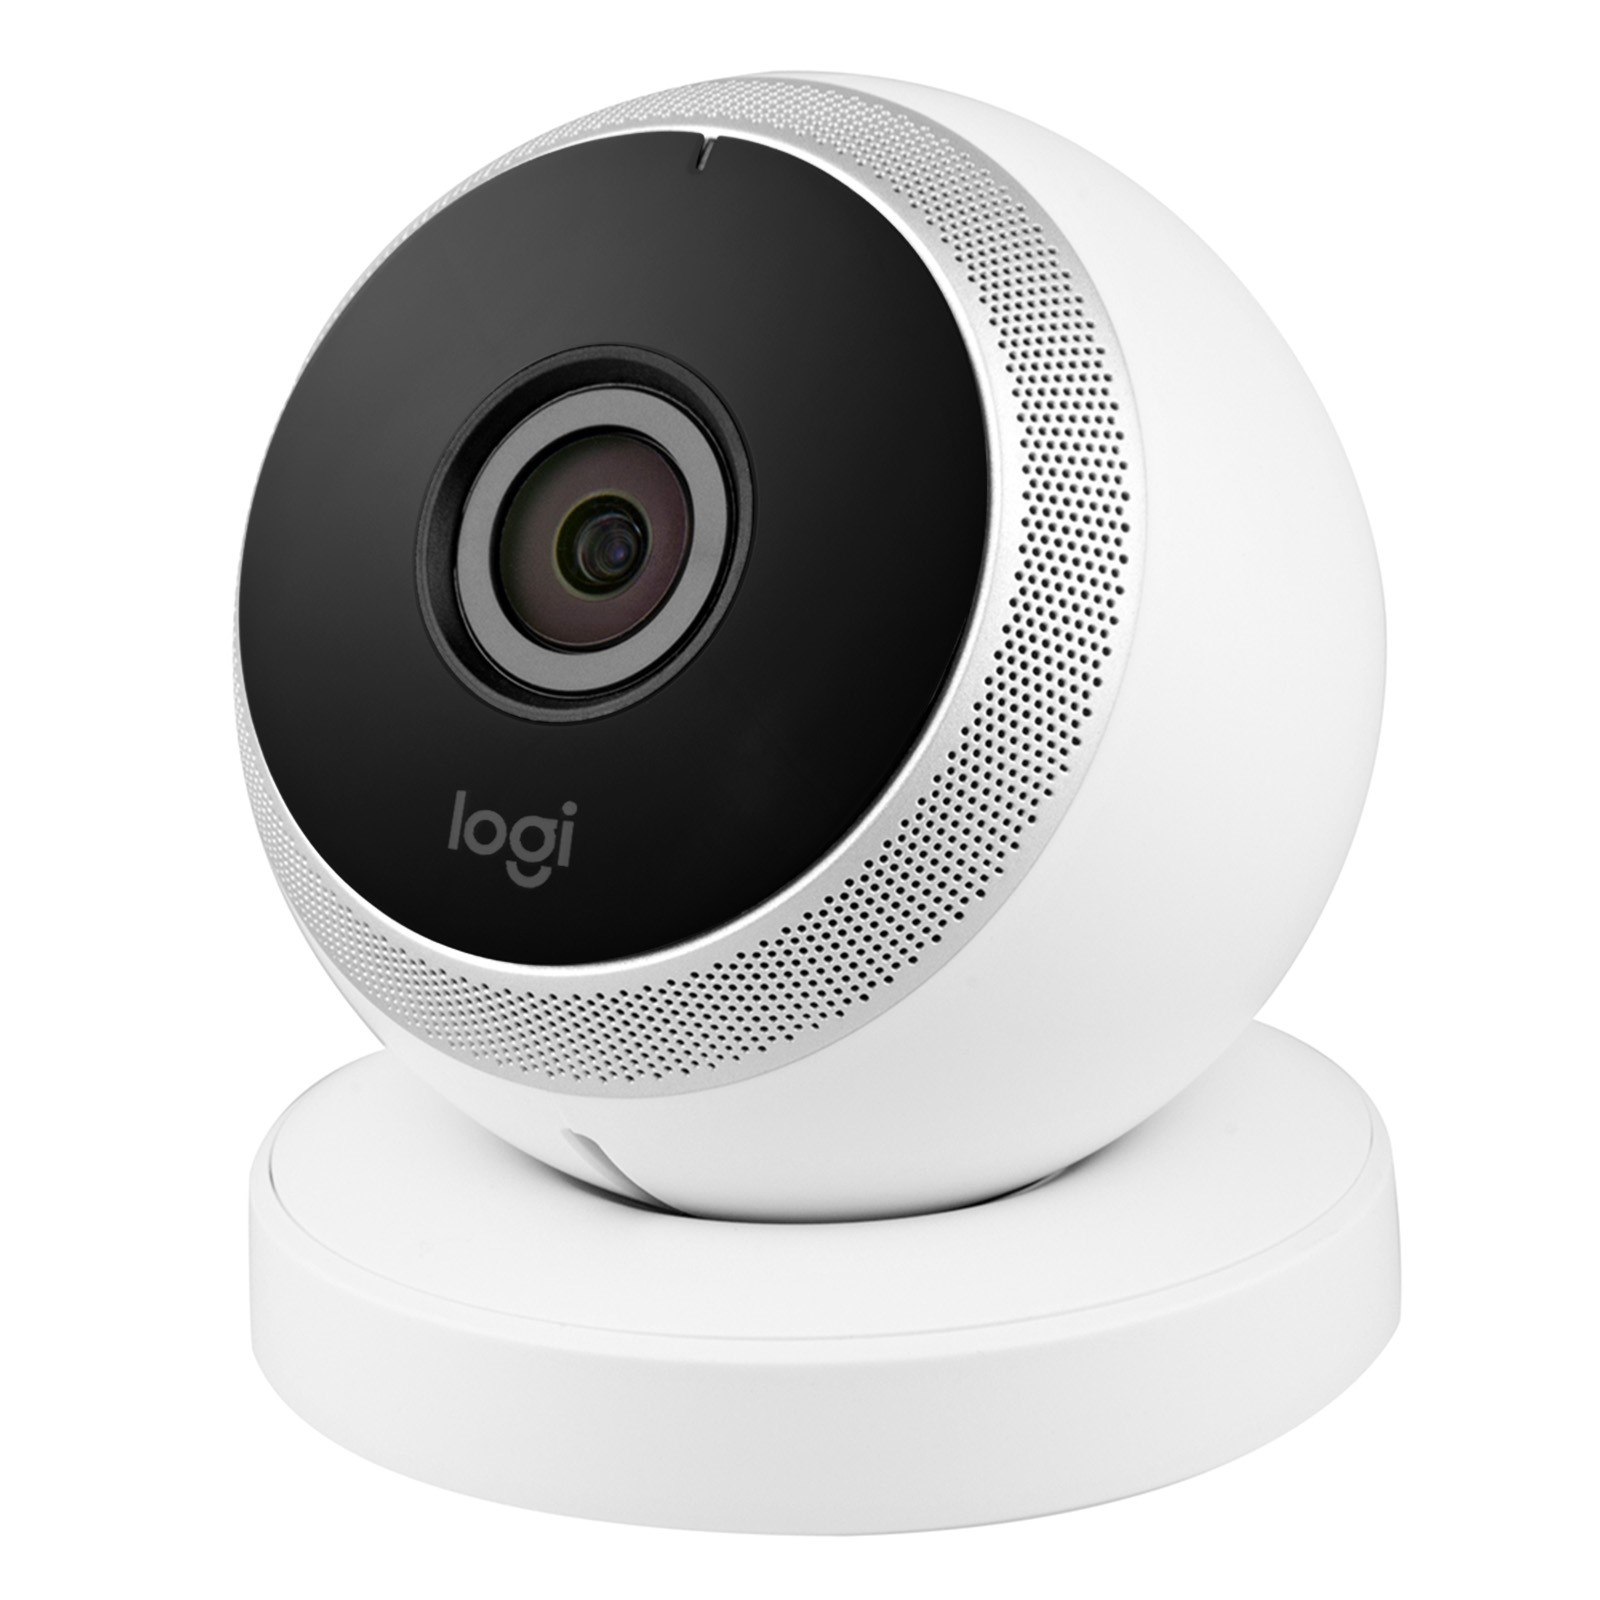 Logitech Circle Wireless 1080p Video Security Camera (Certified Refurbished)